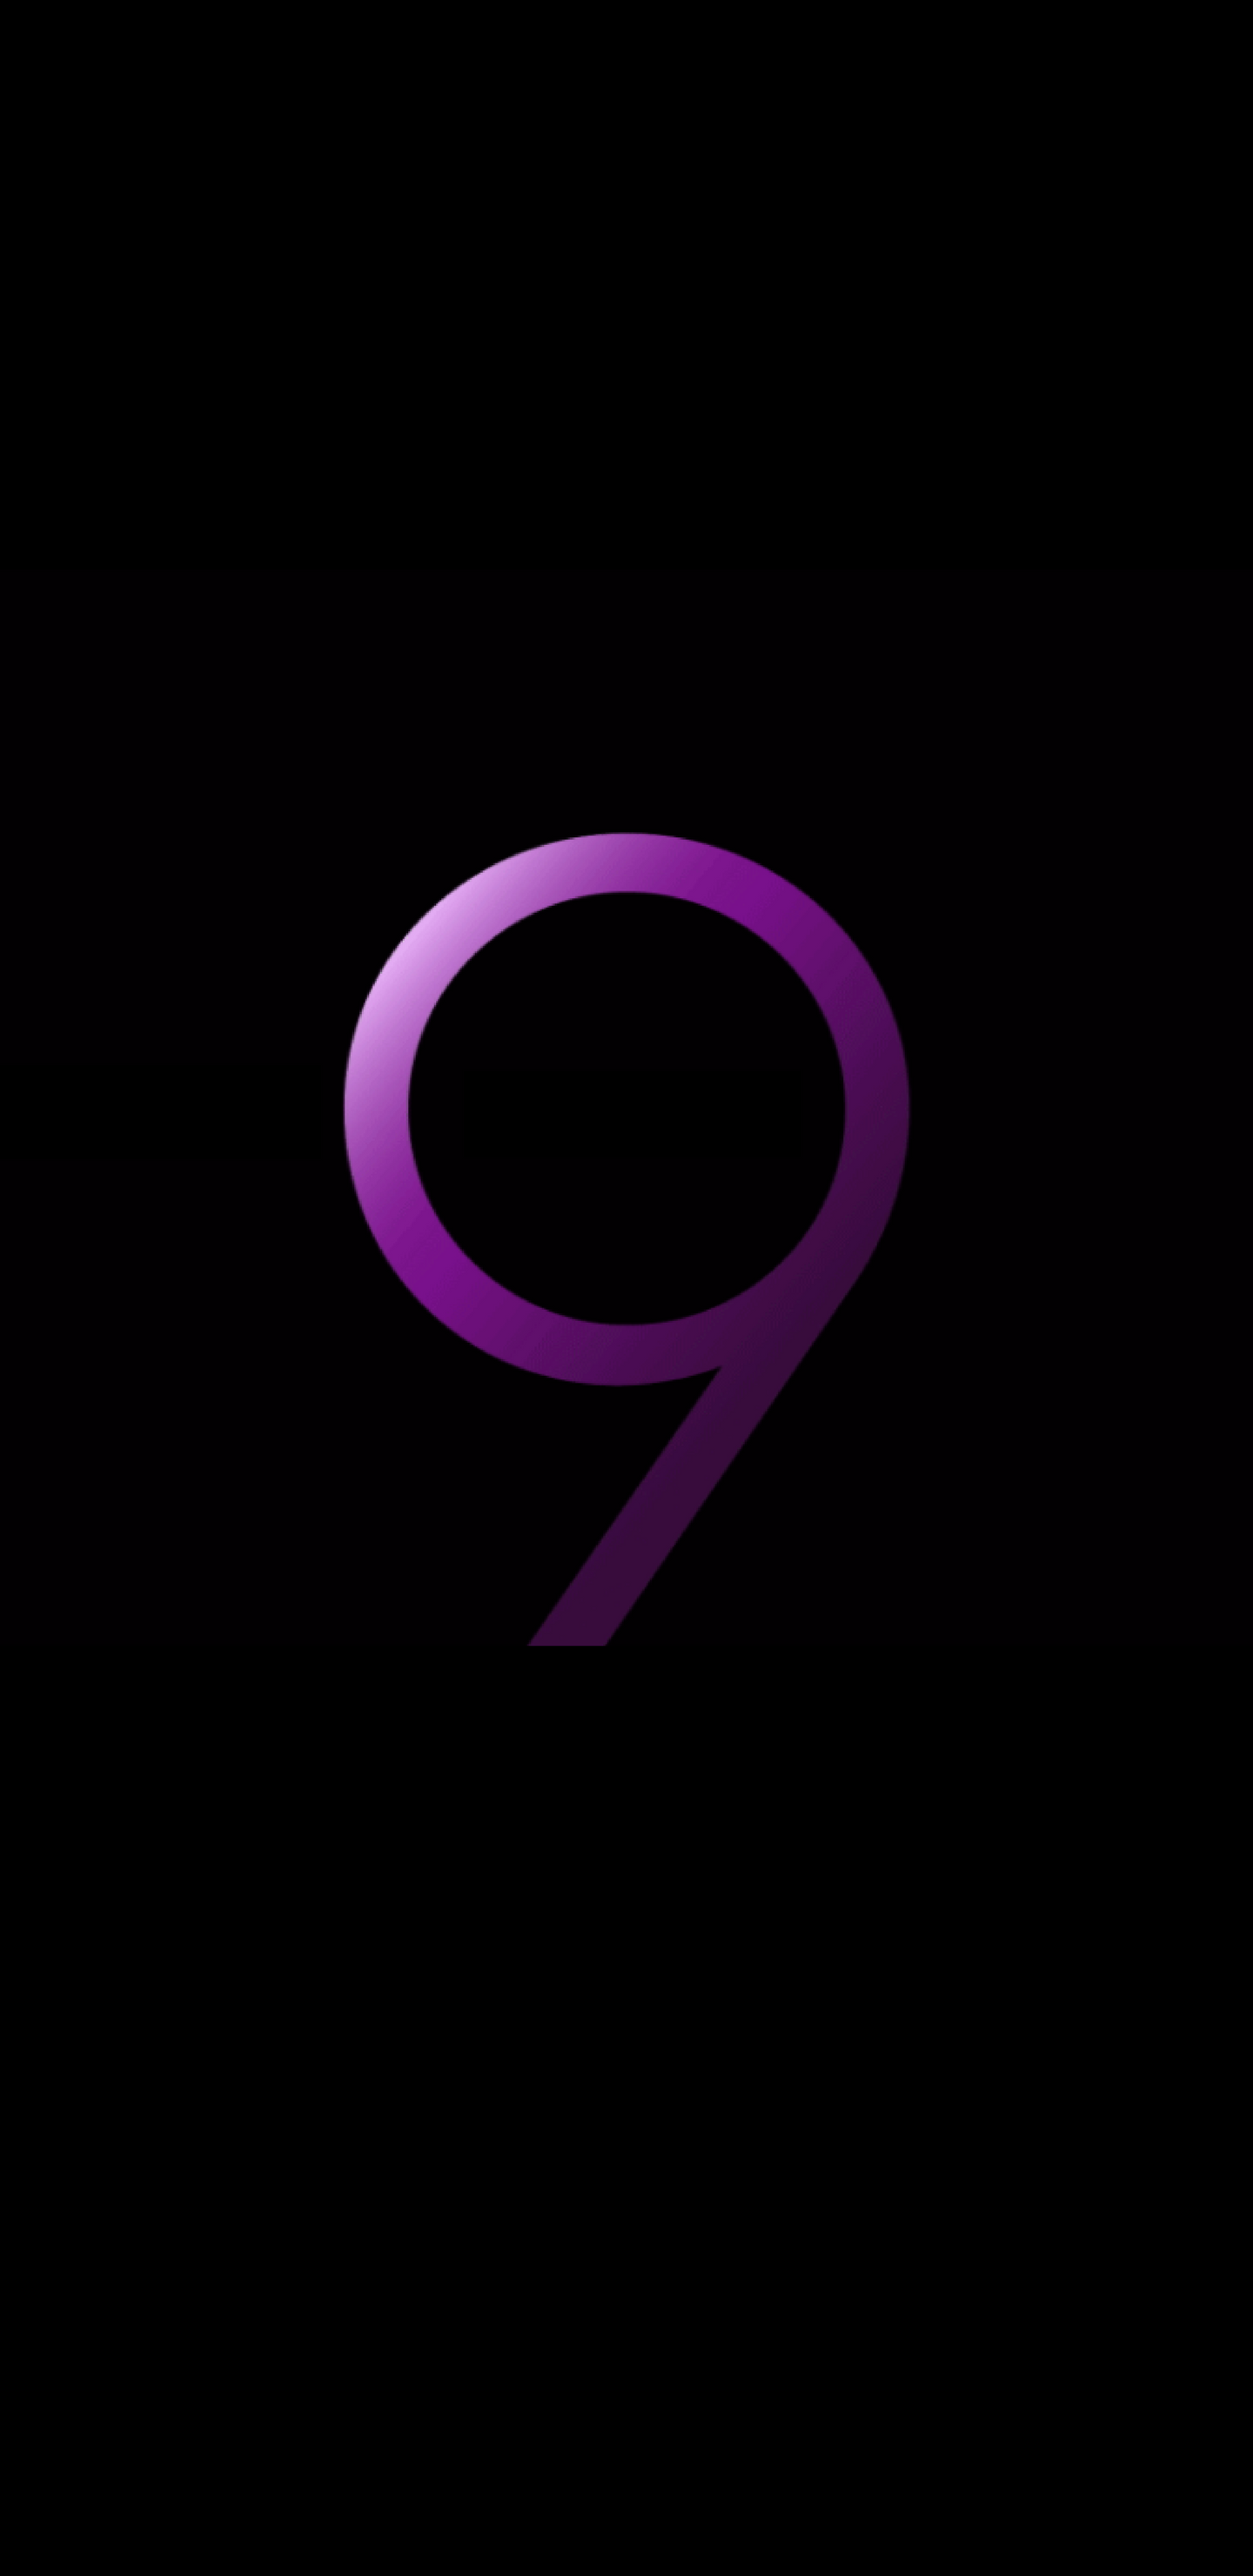 1440x2960 Galaxy S9 Wallpapers